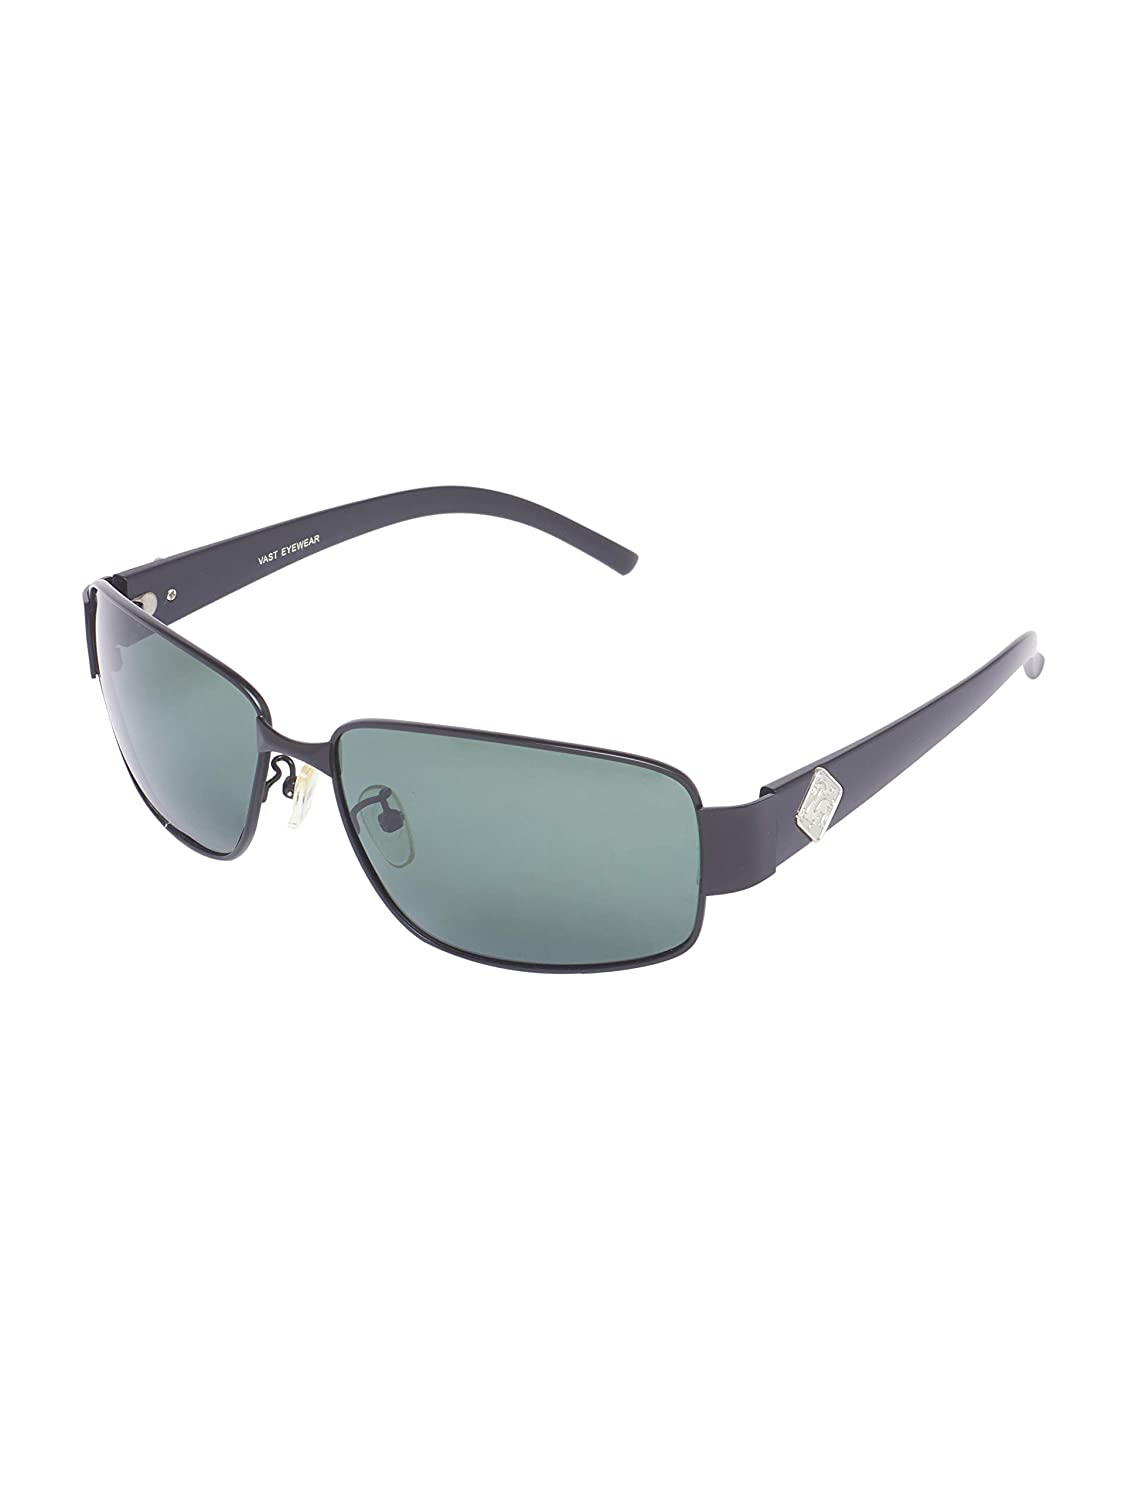 Vast HD TAC Polarized Rectangular Unisex Sunglasses (3205_Black_Green)